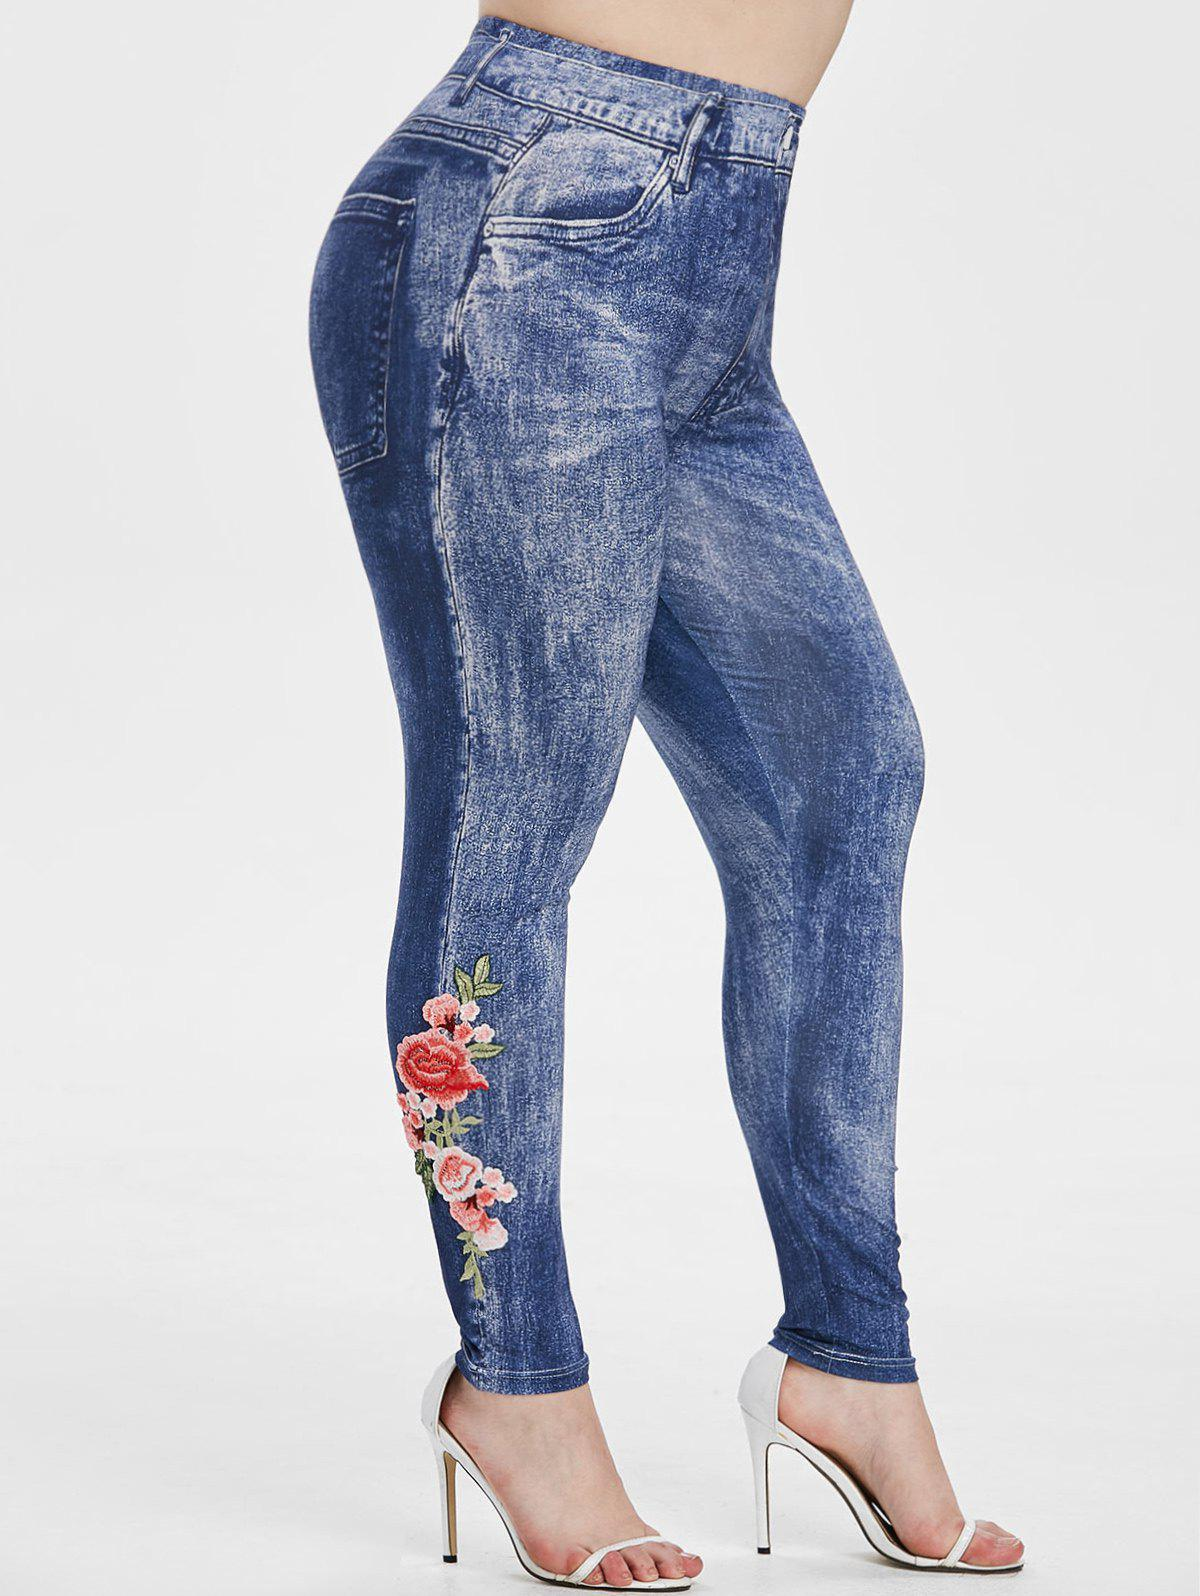 High Waisted 3D Printed Floral Applique Plus Size Jeggings Rosegal